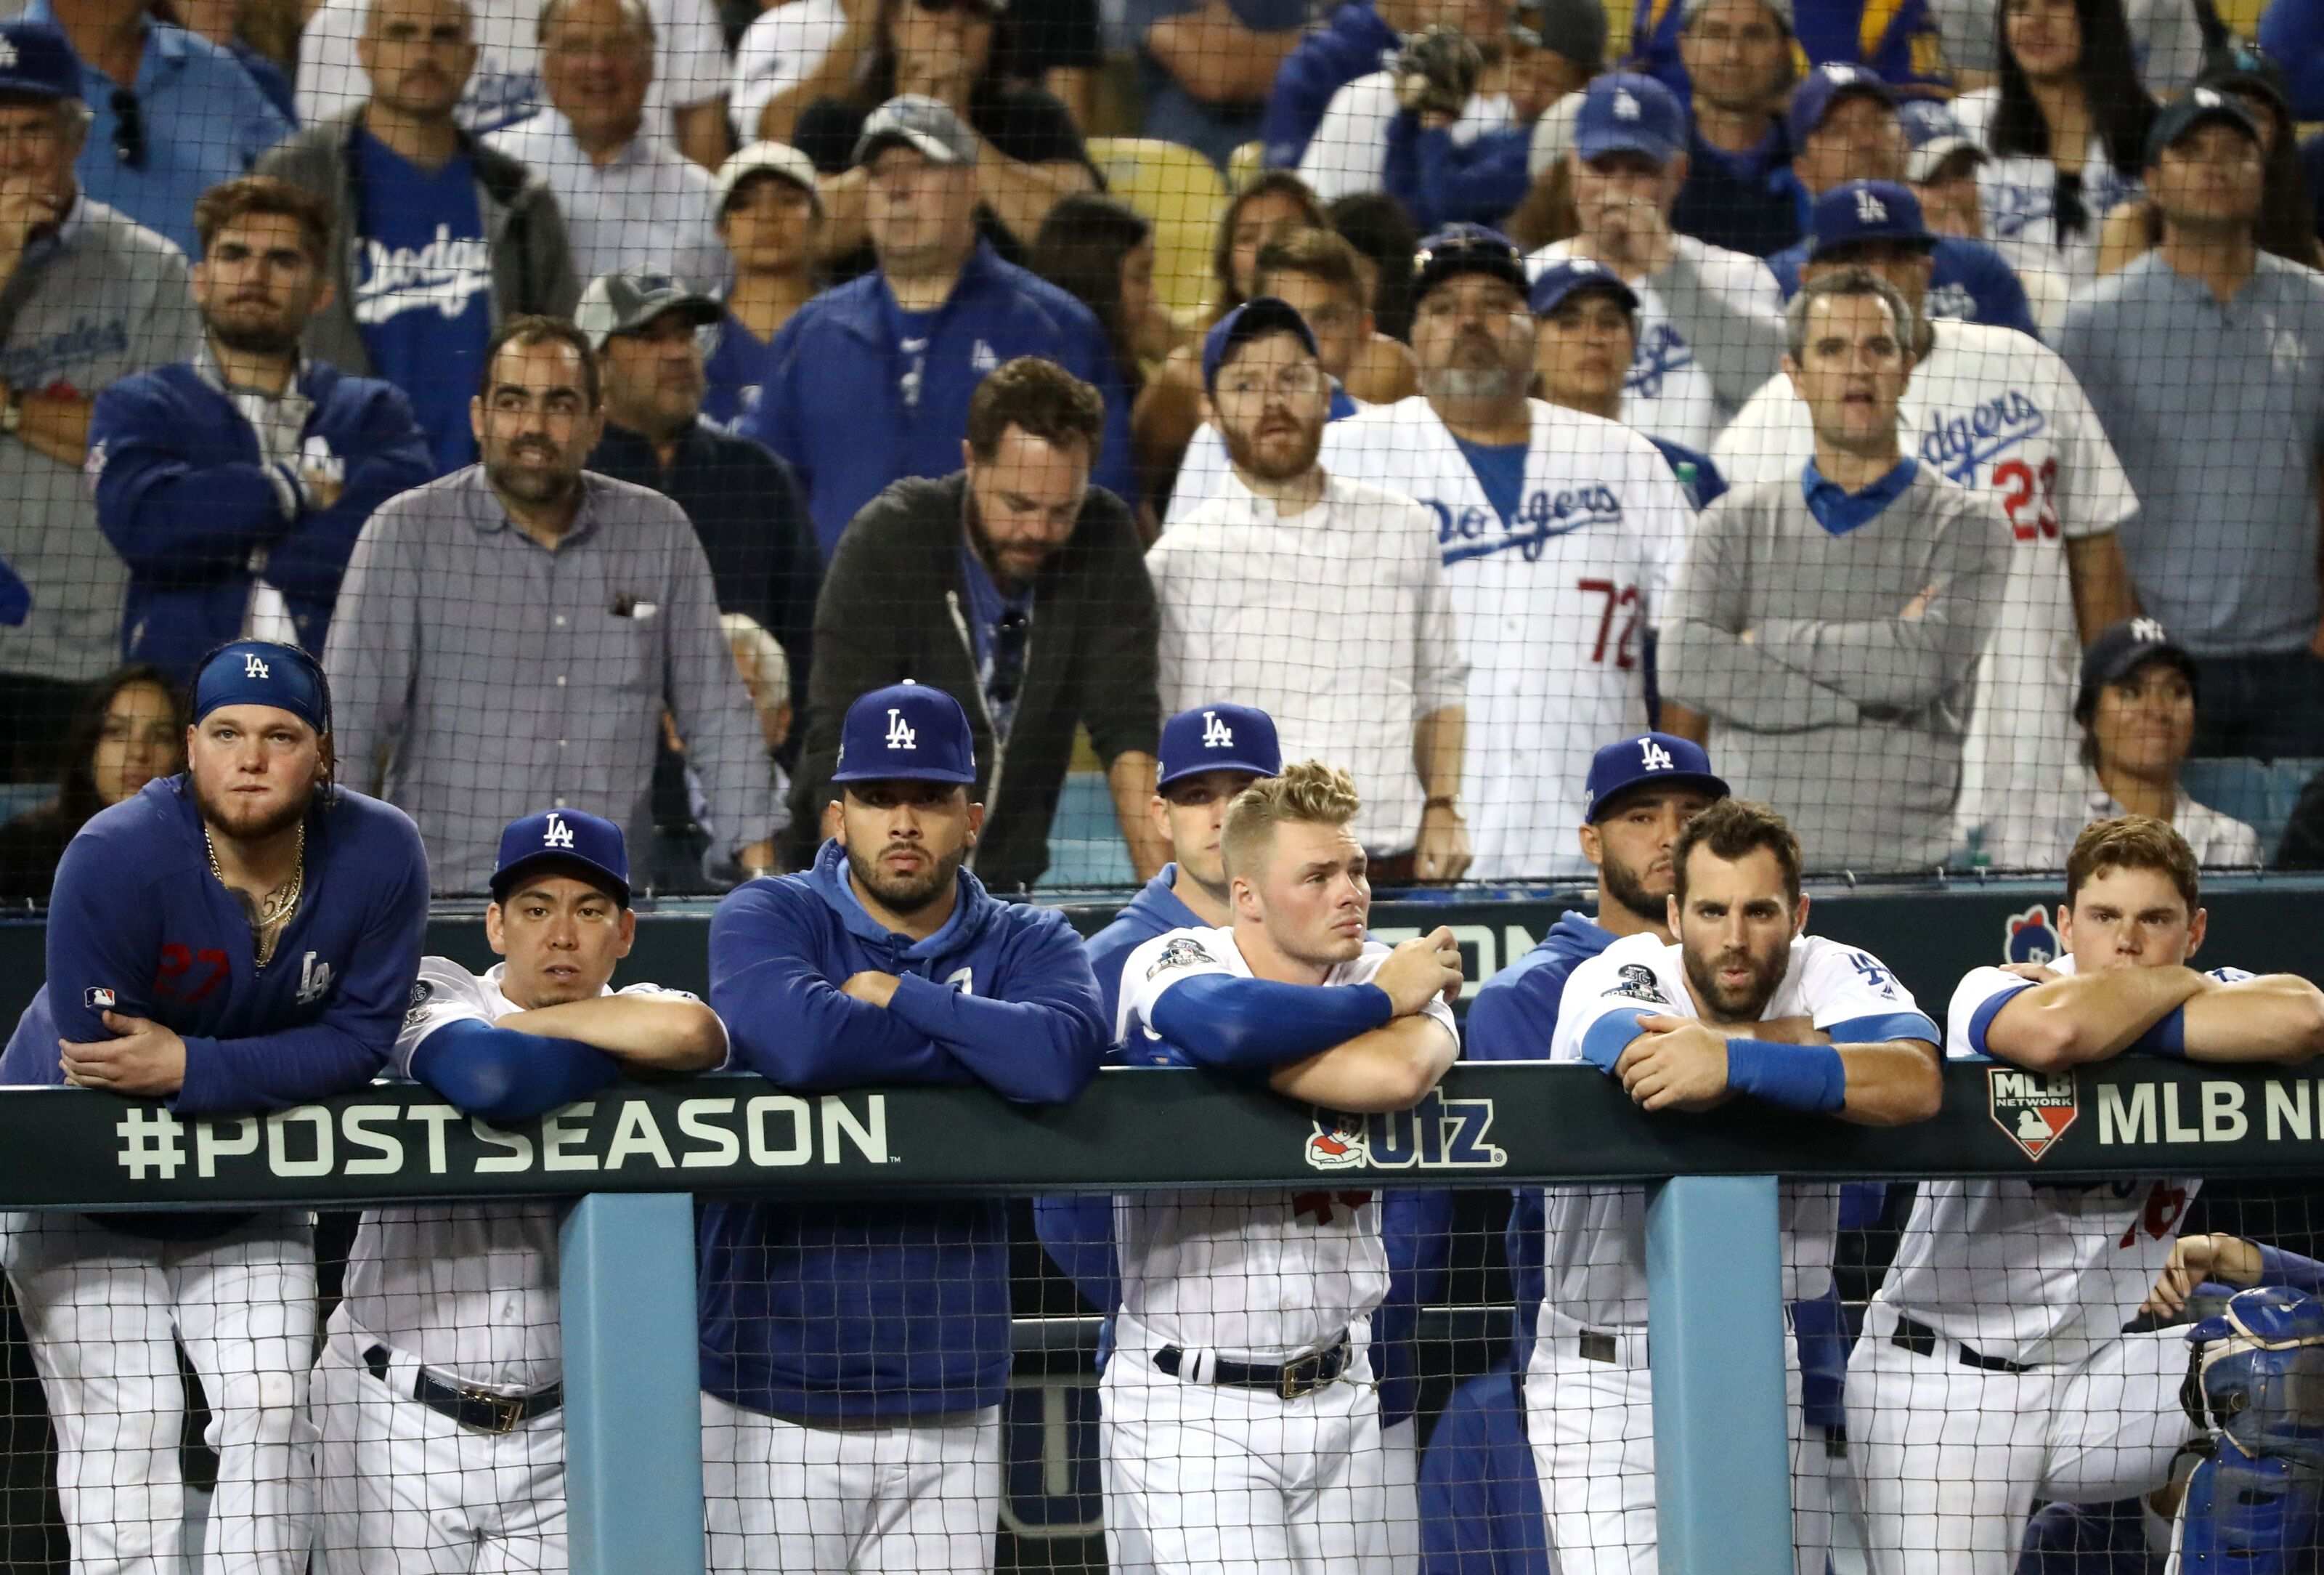 Los Angeles Dodgers: One player that is destined to be traded this winter